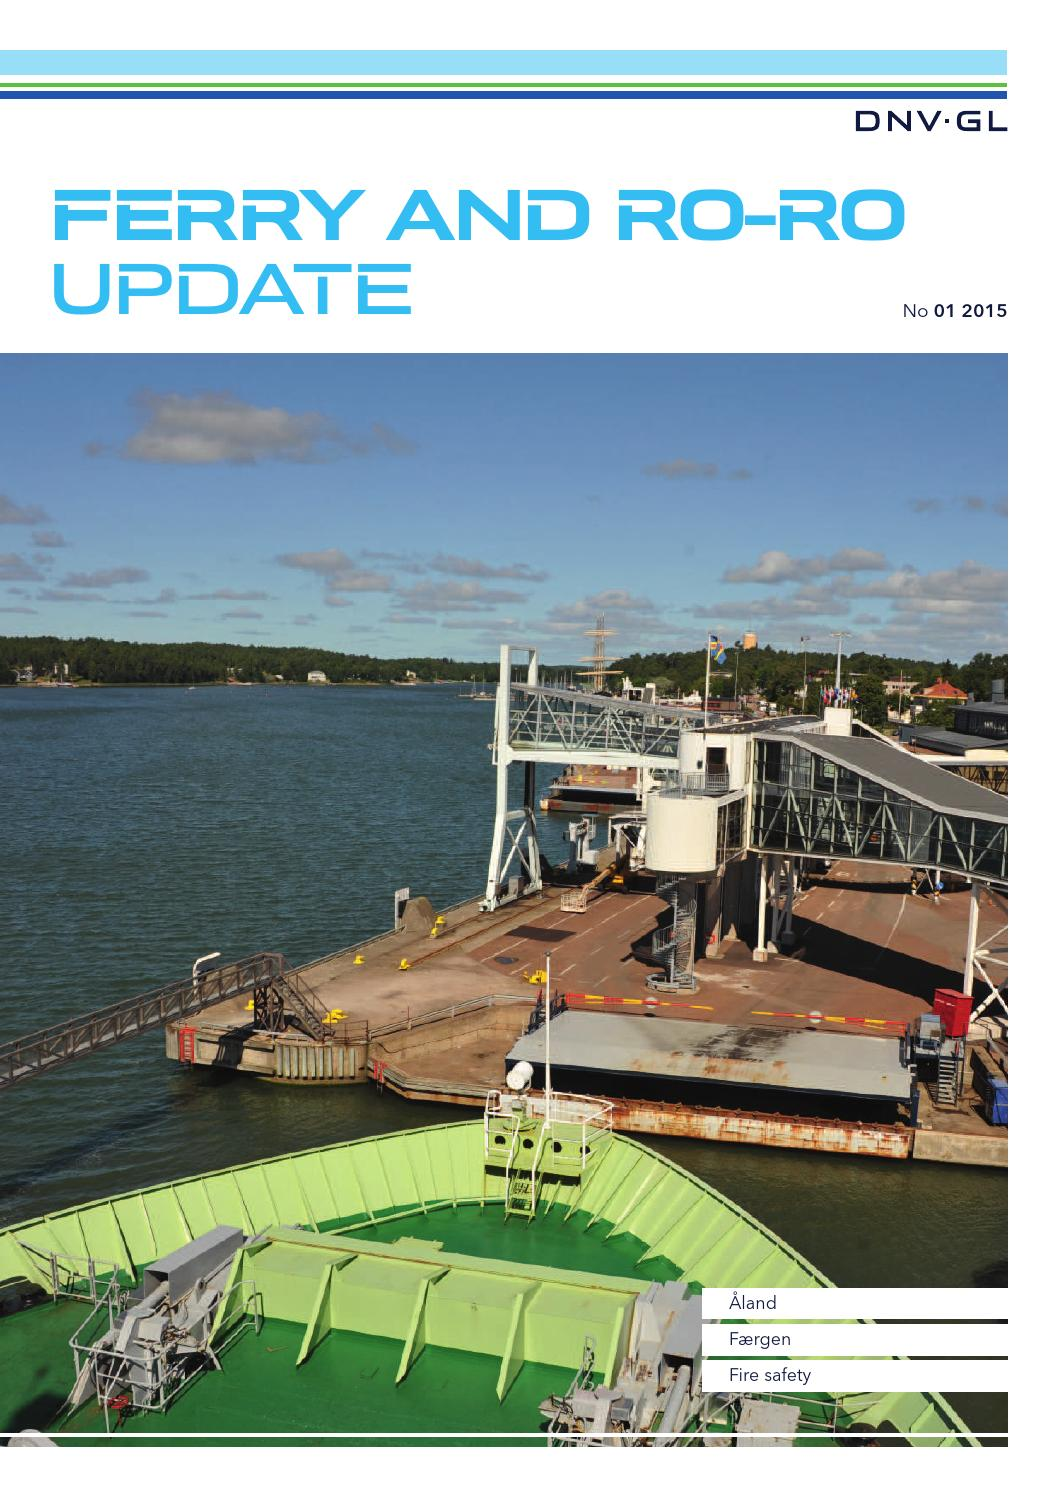 DNV GL Ferry and Ro-Ro Update 01-2015 by DNV GL - issuu